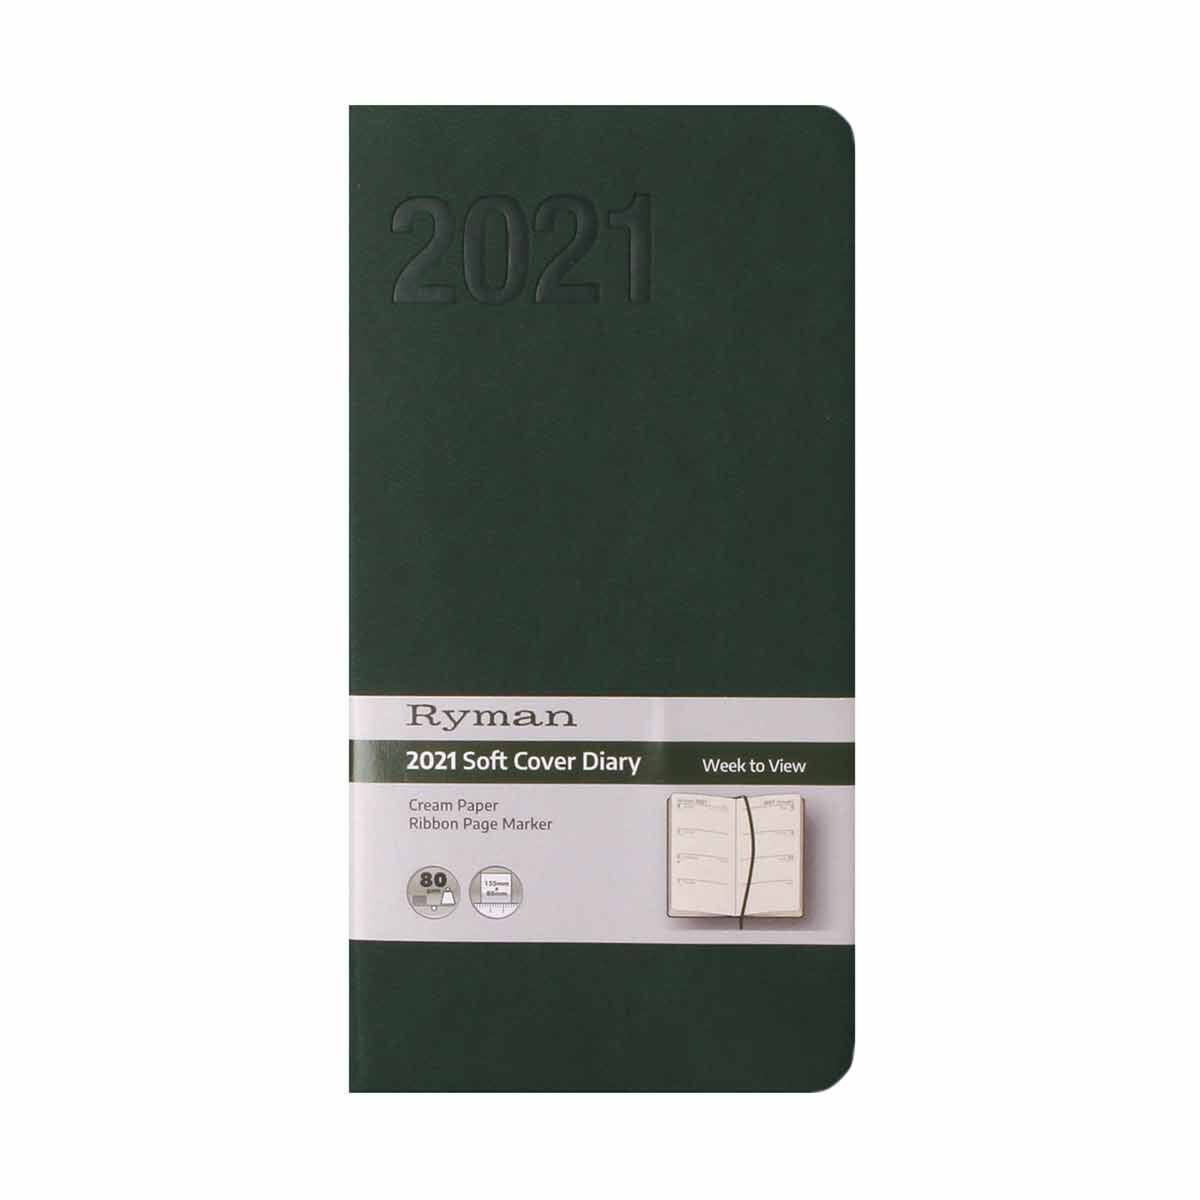 Ryman Soft Touch Diary Week to View Slim 2021 Green